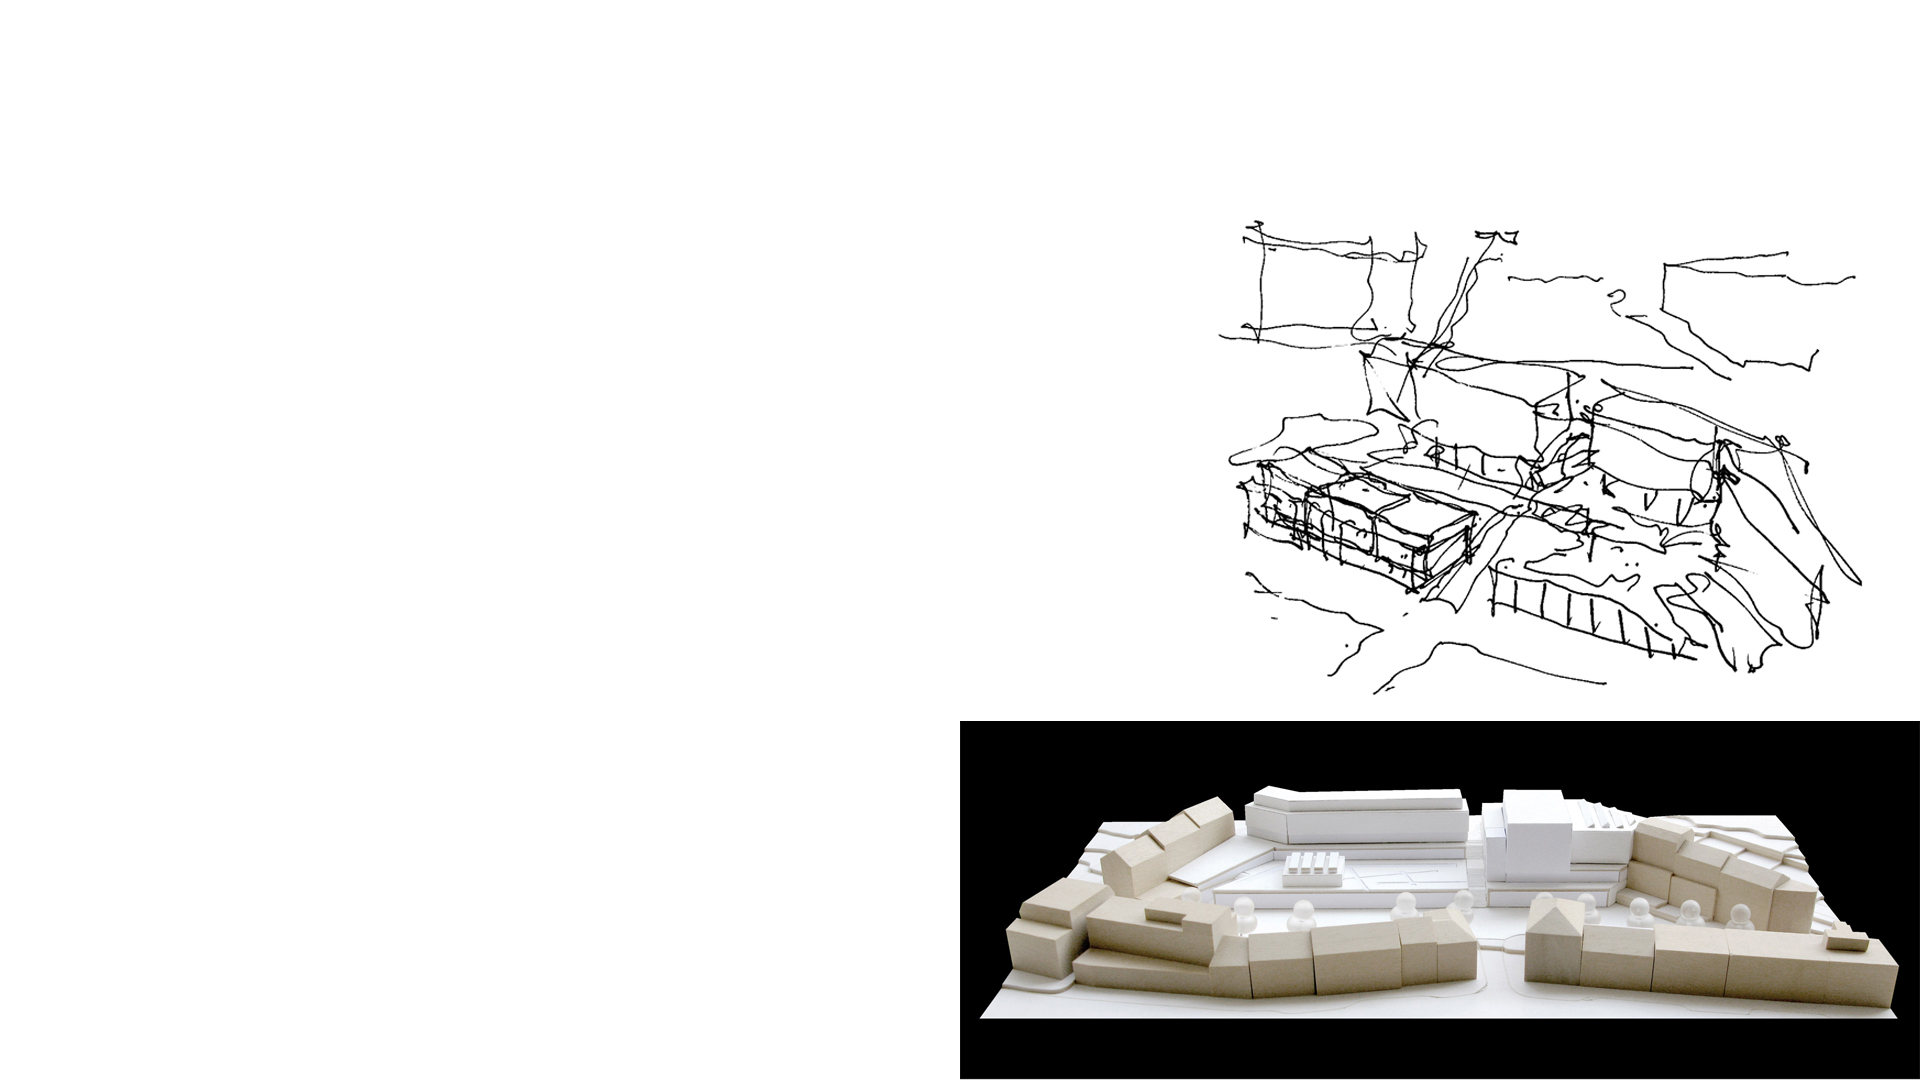 Keith Williams' concept sketch and massing model showing the form for the new Molde Theatre & Jazzhouse Molde Norway